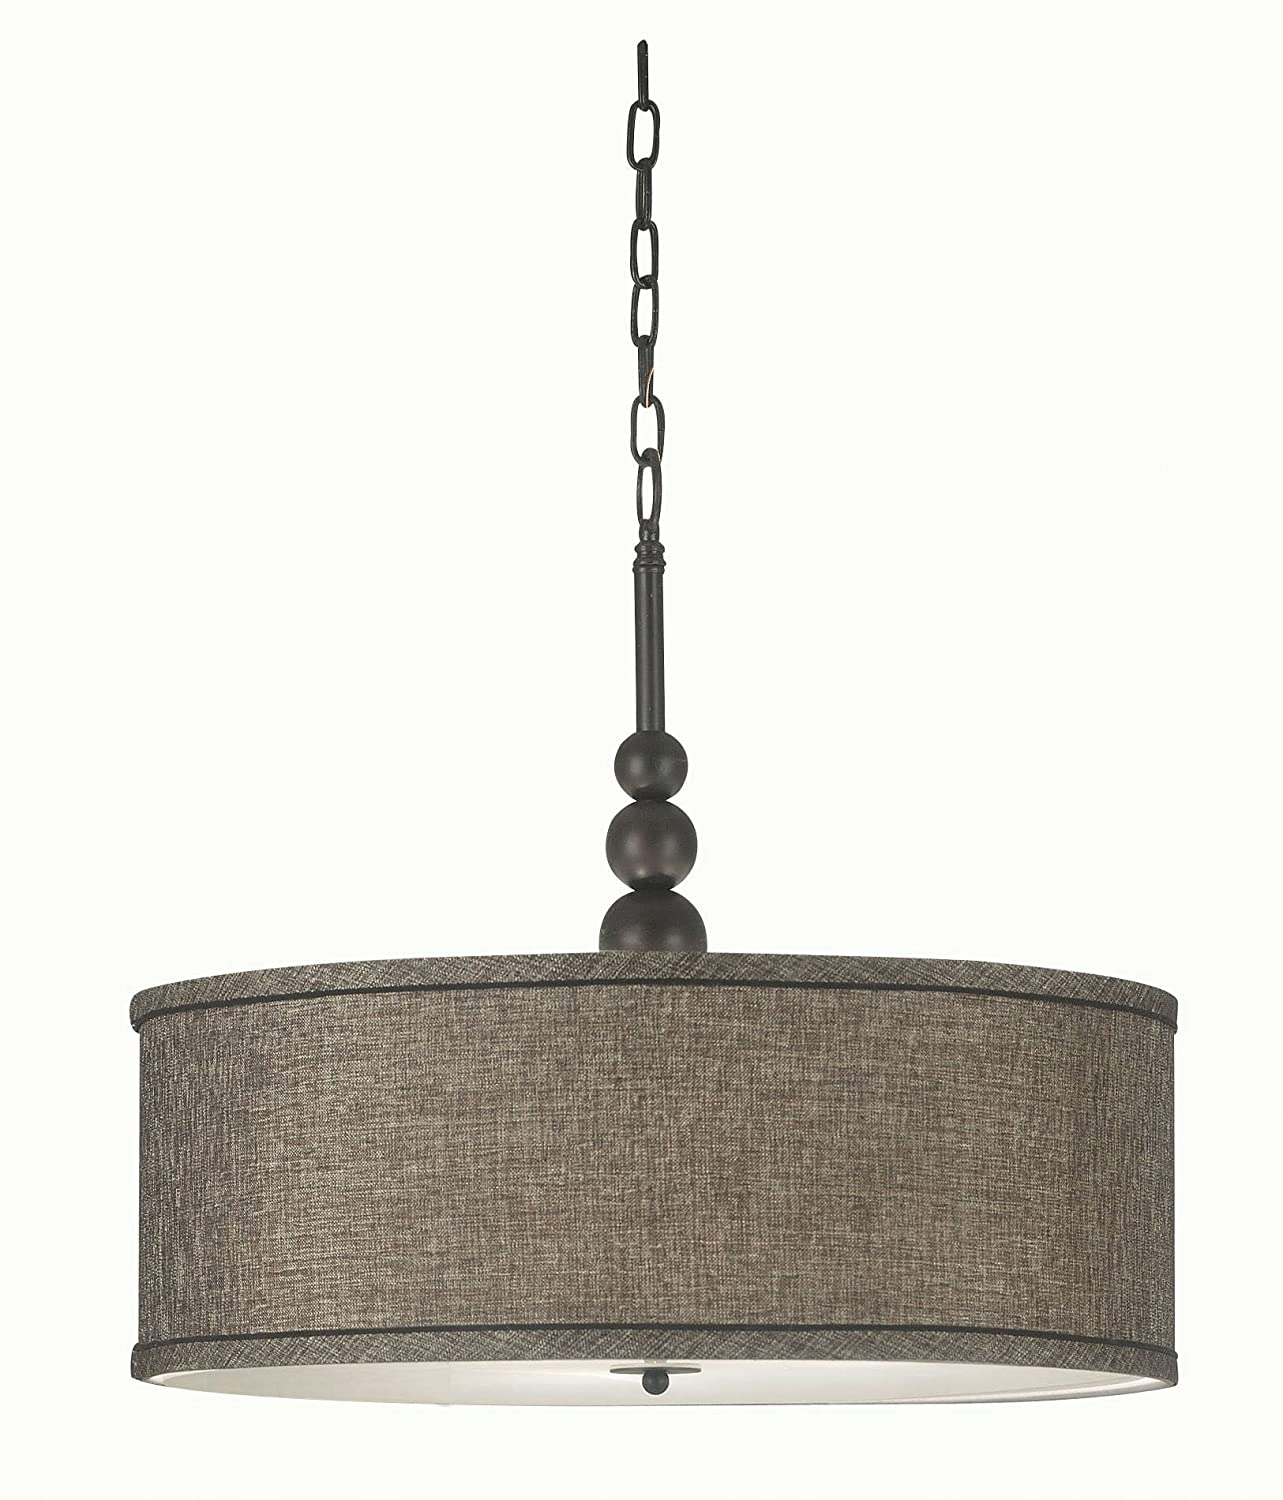 outdoor magnifying and in glass seeded bronze item light cfm finish shown hanging lighting pendant barbosa inch wide clear image troy